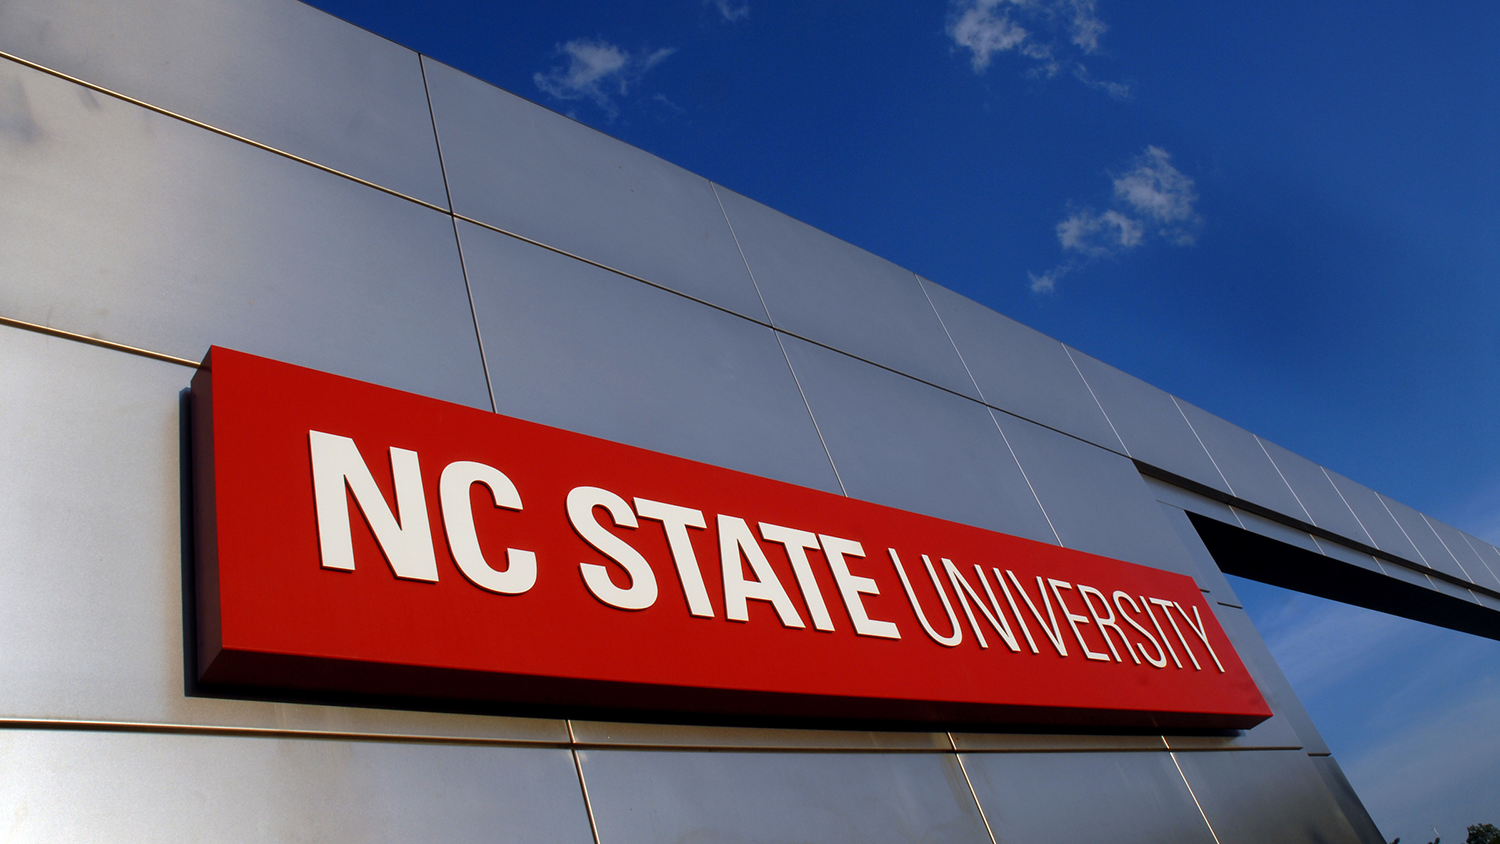 NC State campus gateway sign